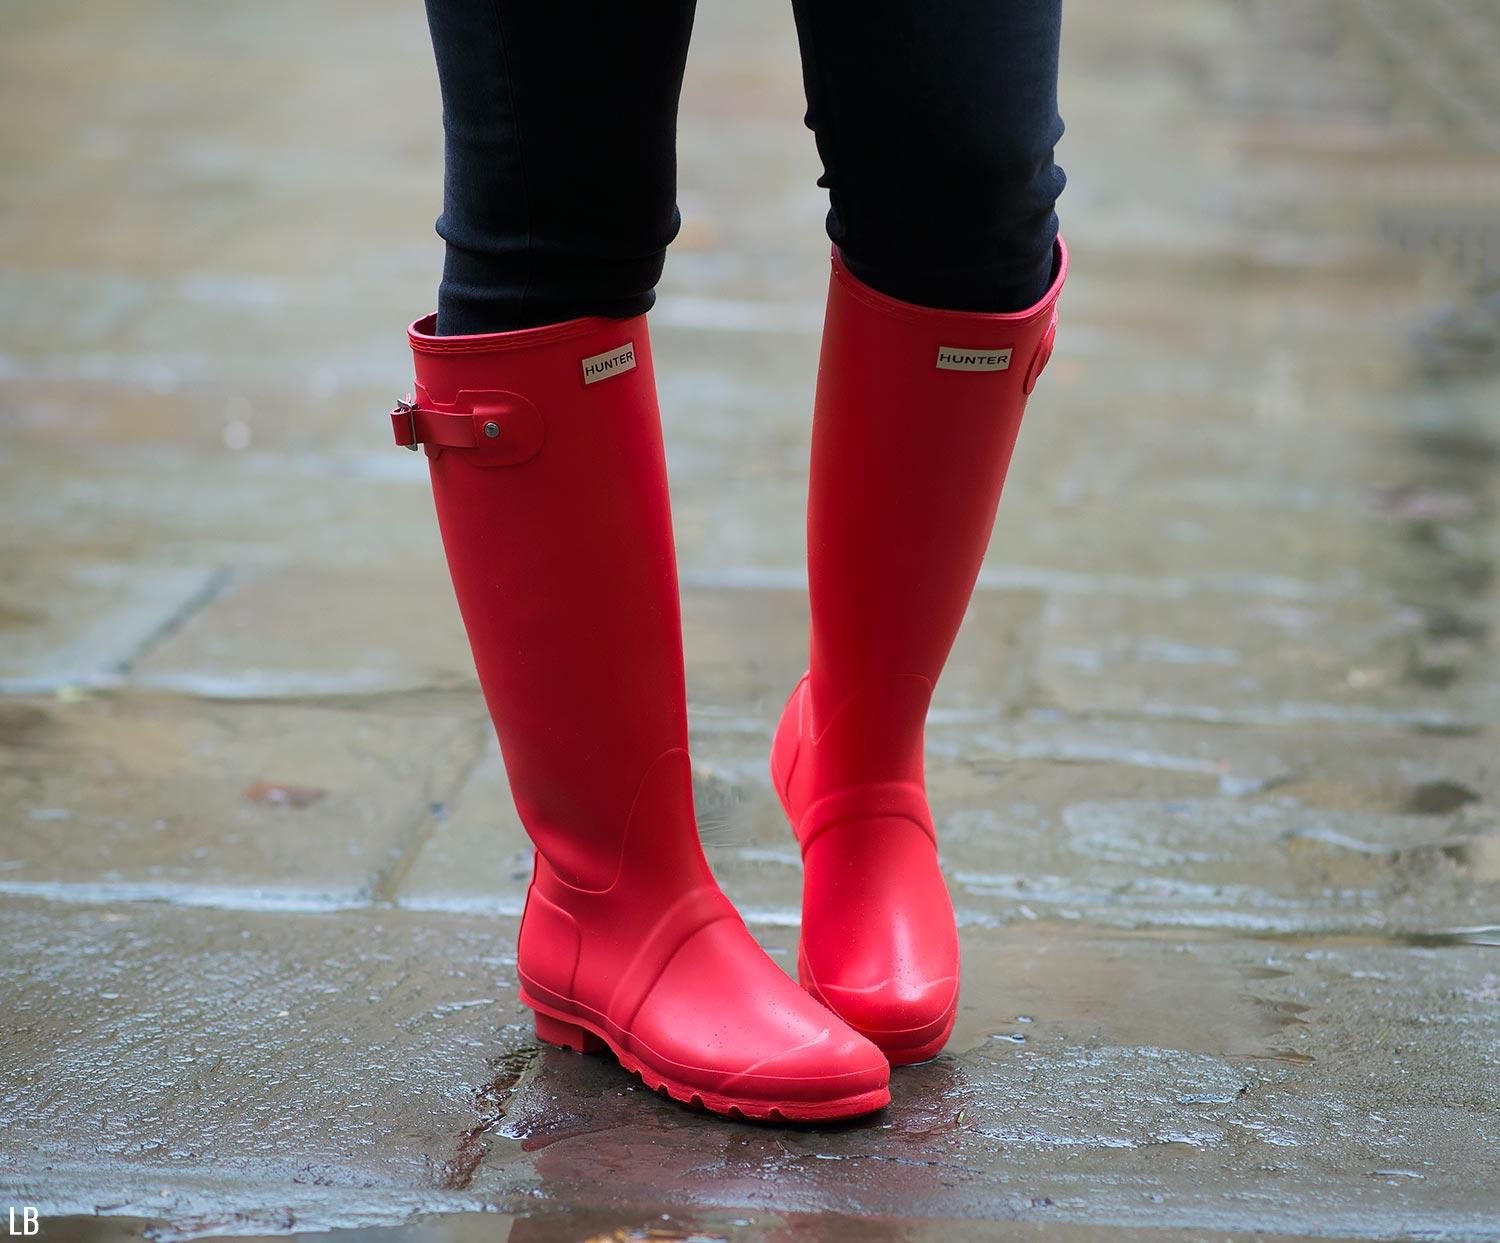 Rainy Days In Bright Coral Wellies Raindrops Of Sapphire